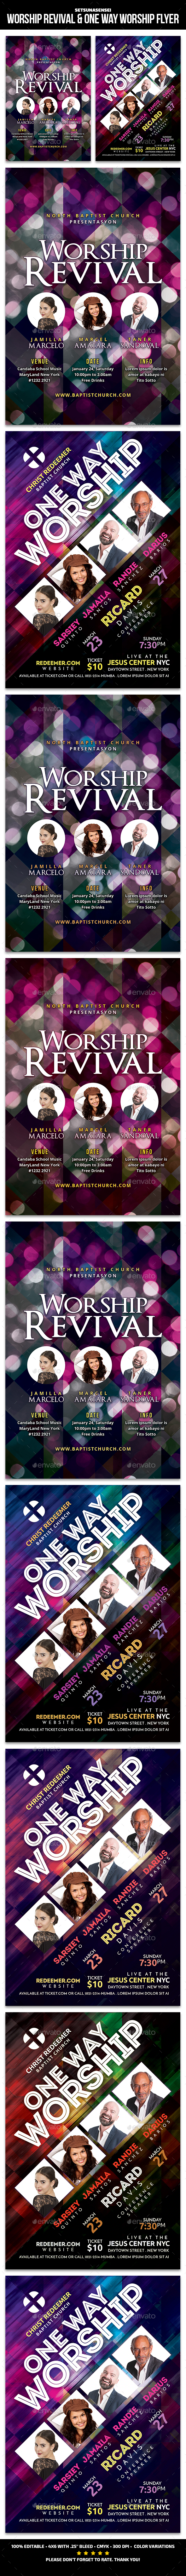 Worship Revival & One Way Worship Flyer - Church Flyers